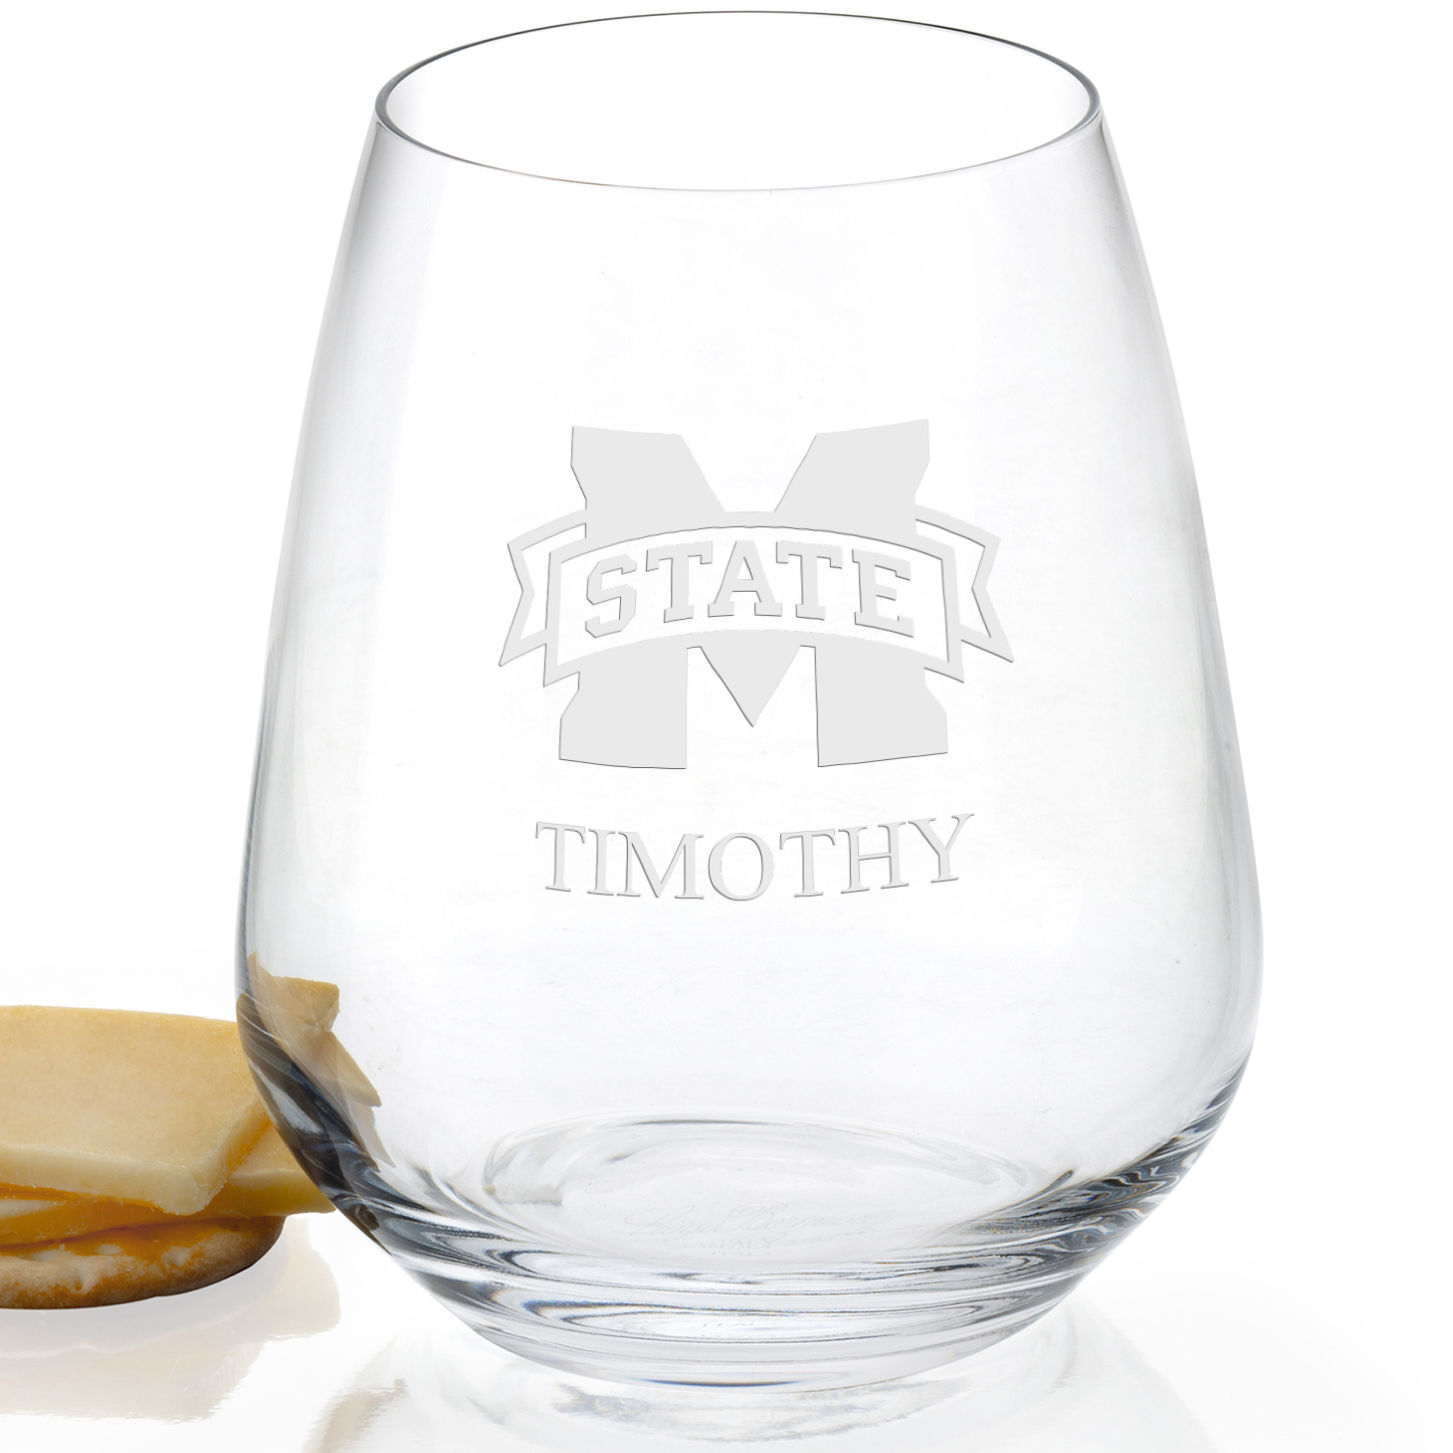 Mississippi State Stemless Wine Glasses - Set of 2 - Image 2